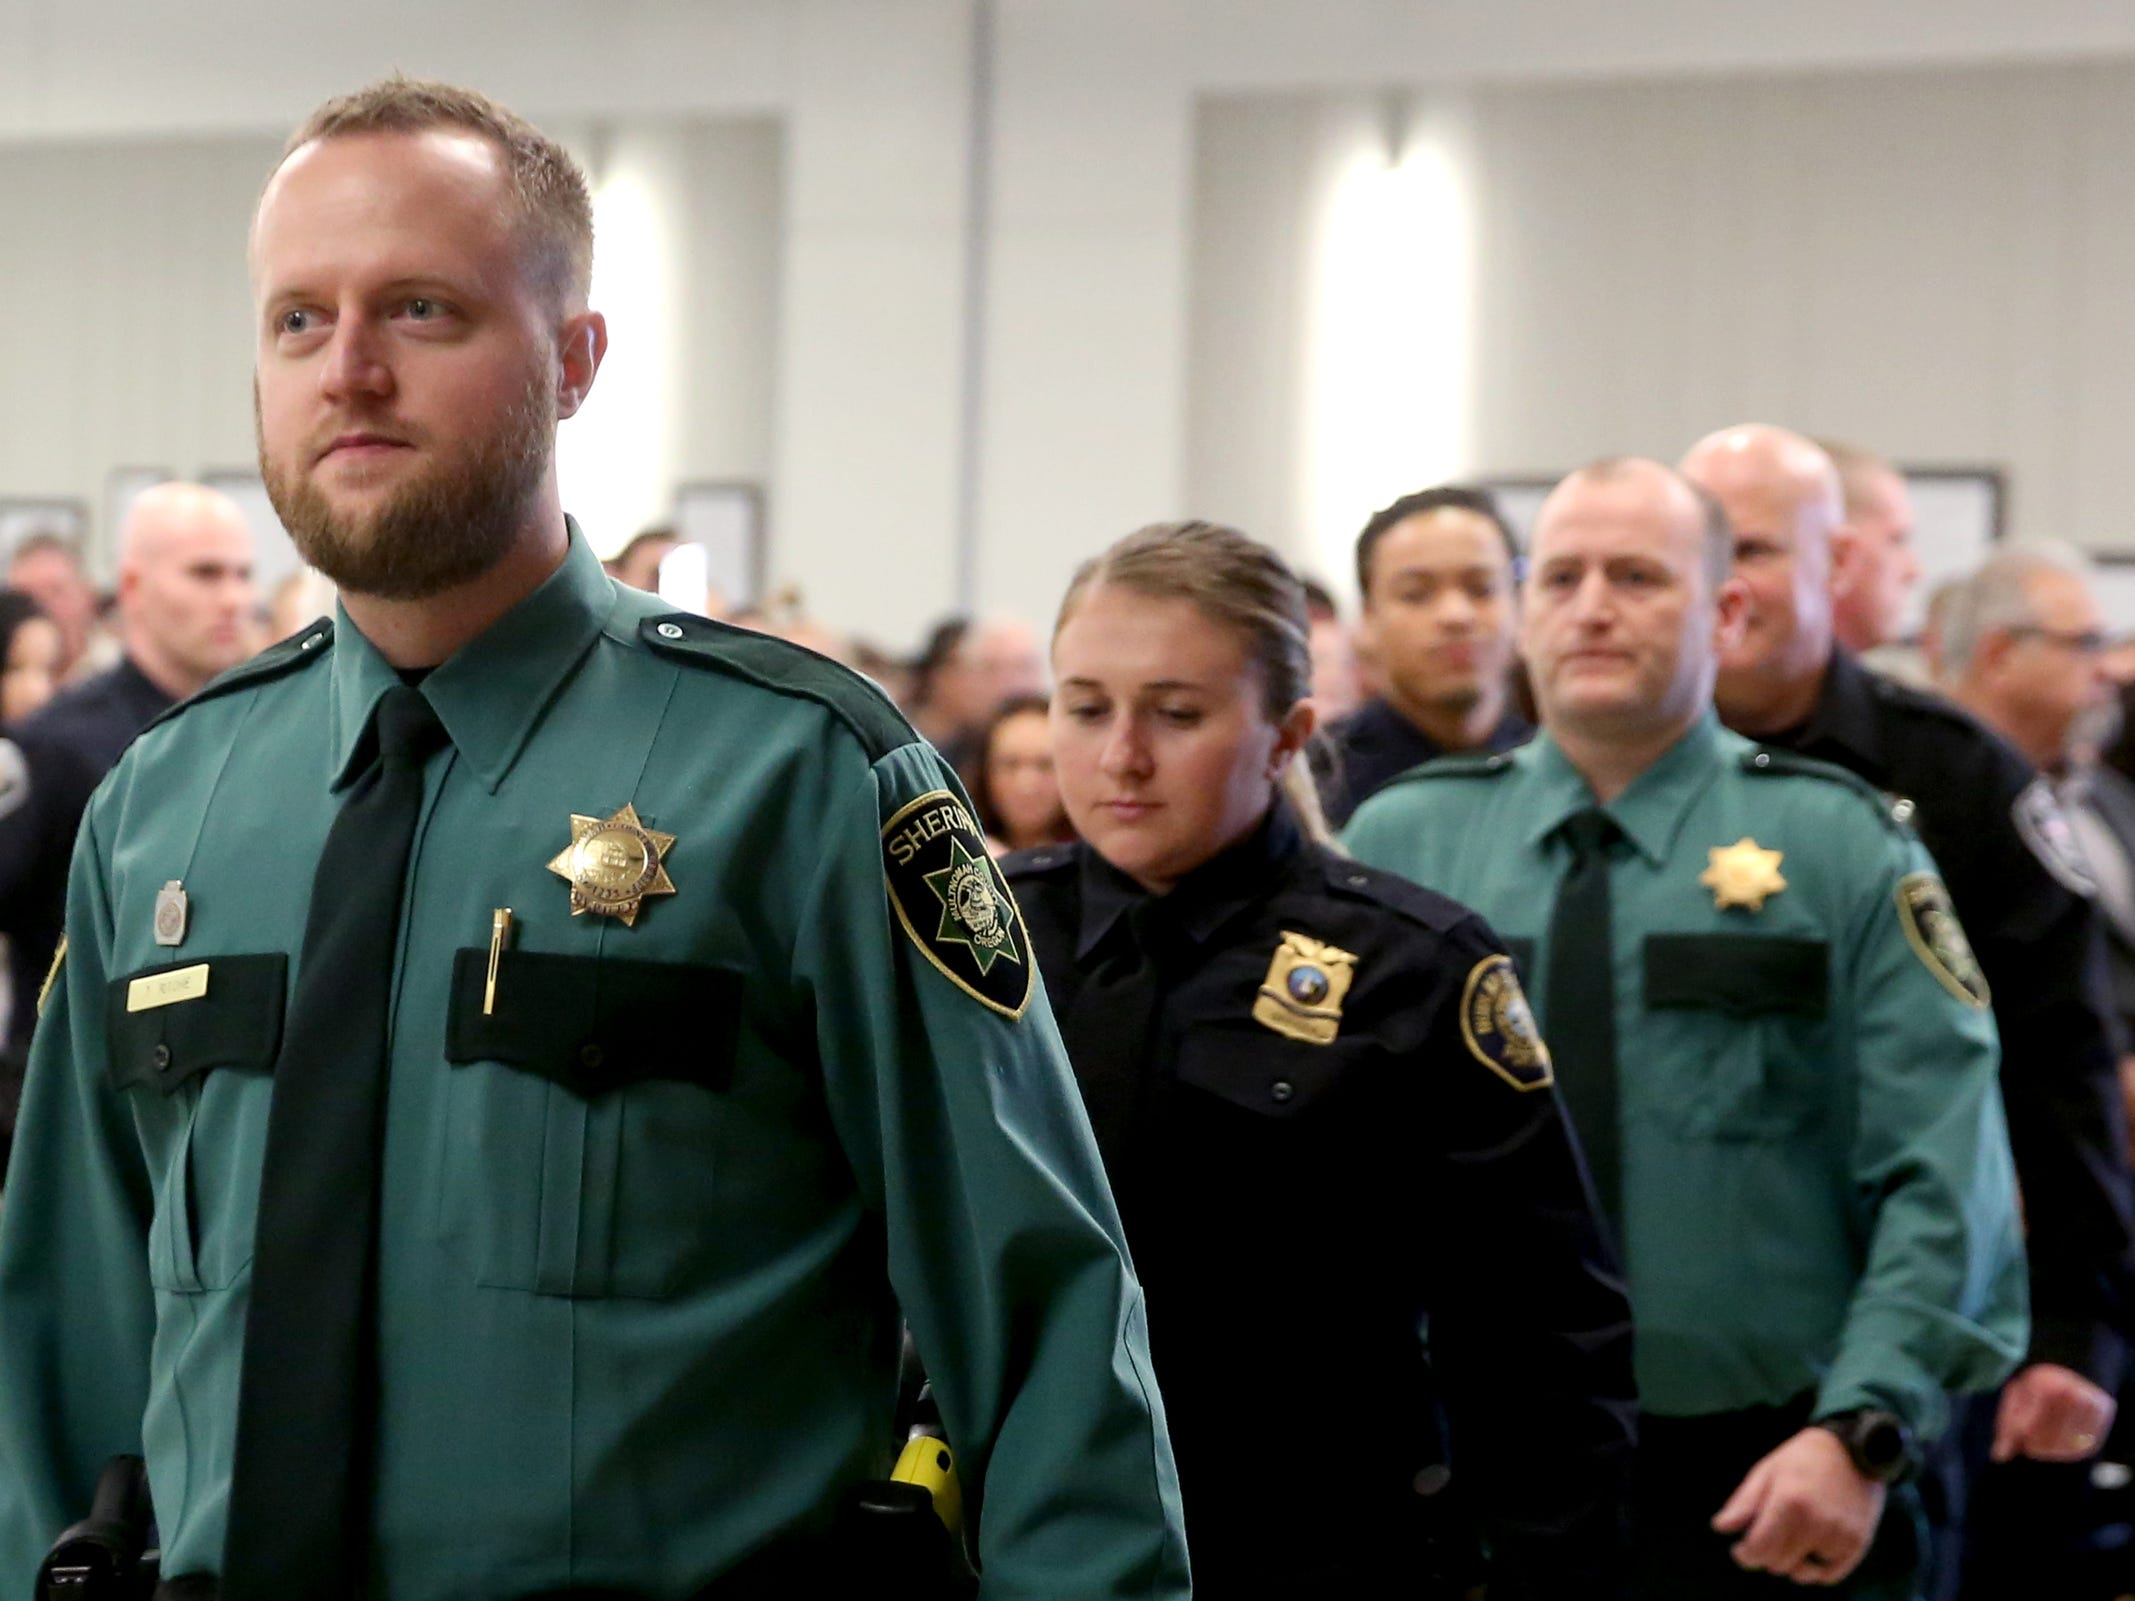 Graduates take to the stage for a Basic Police Class graduation ceremony at the Department of Public Safety Standards and Training in Salem on March 15, 2019.